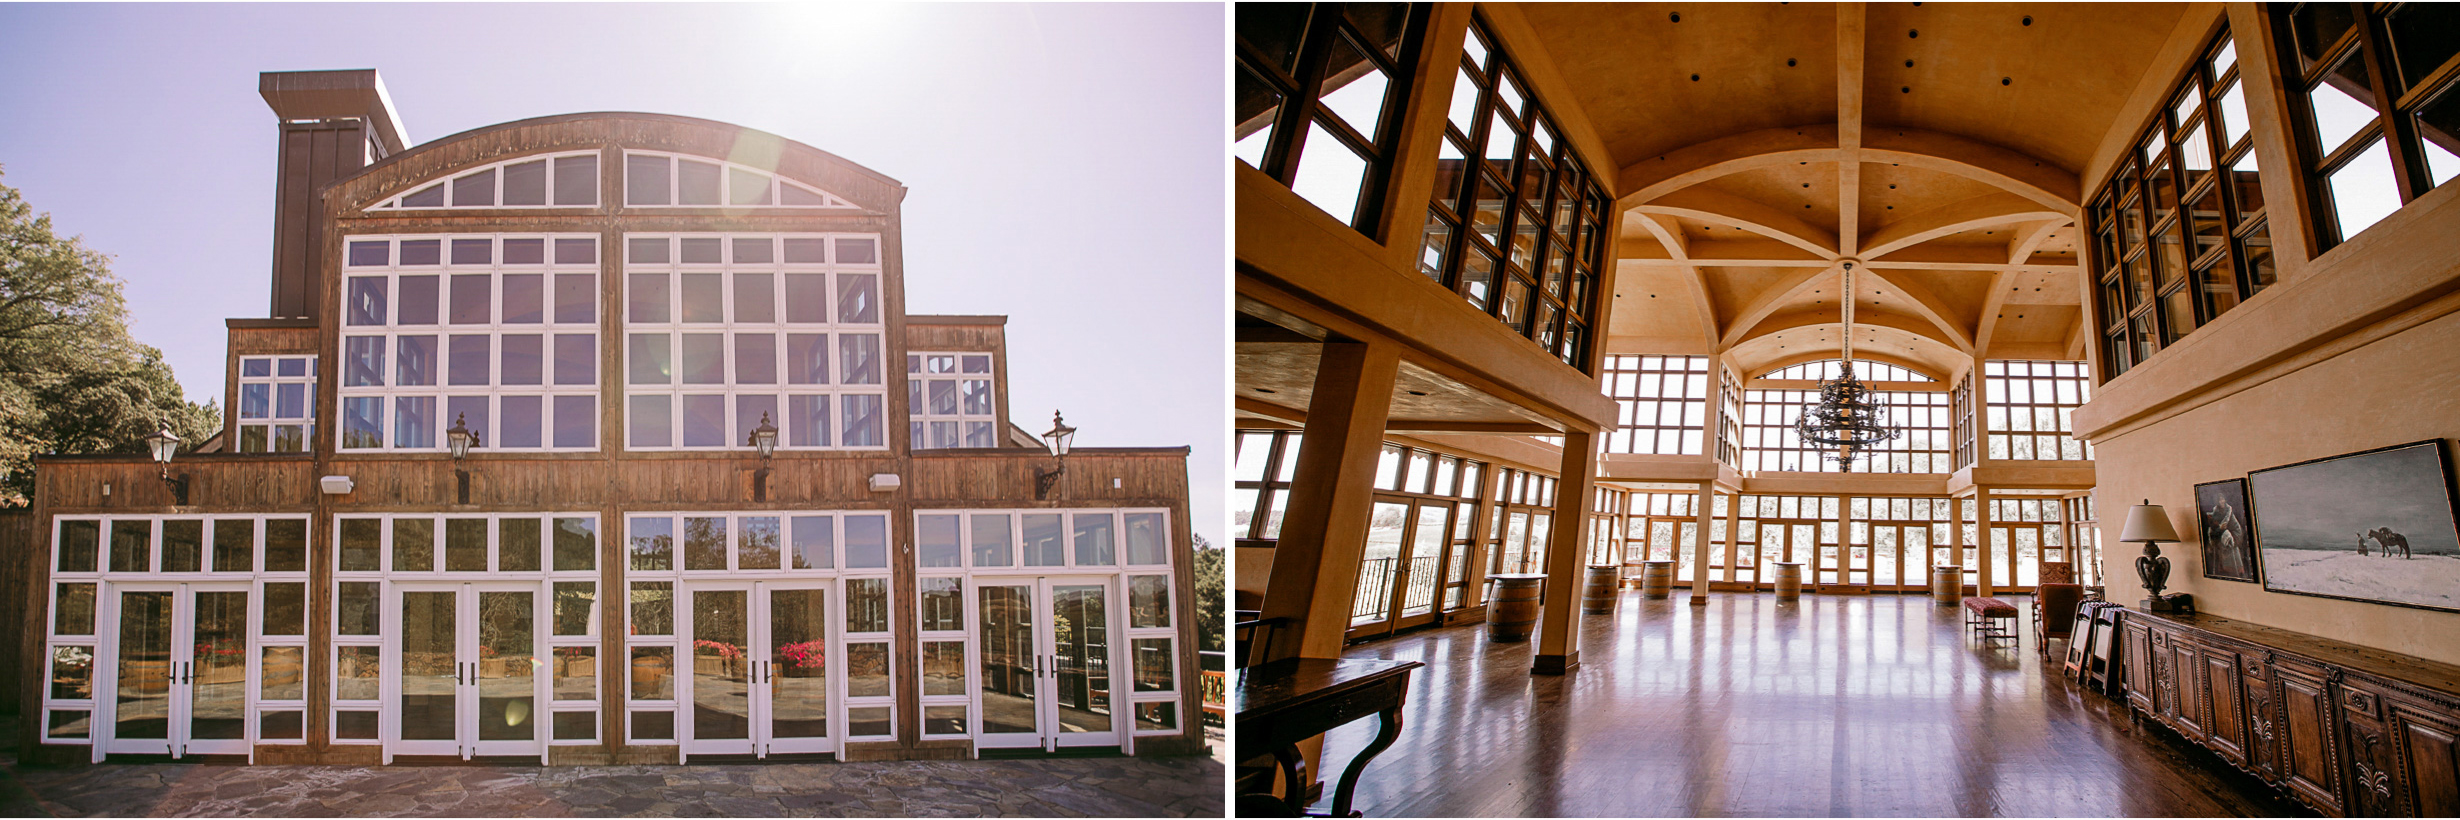 san diego wedding   photographer | collage of outside of building with glass windows and   interior